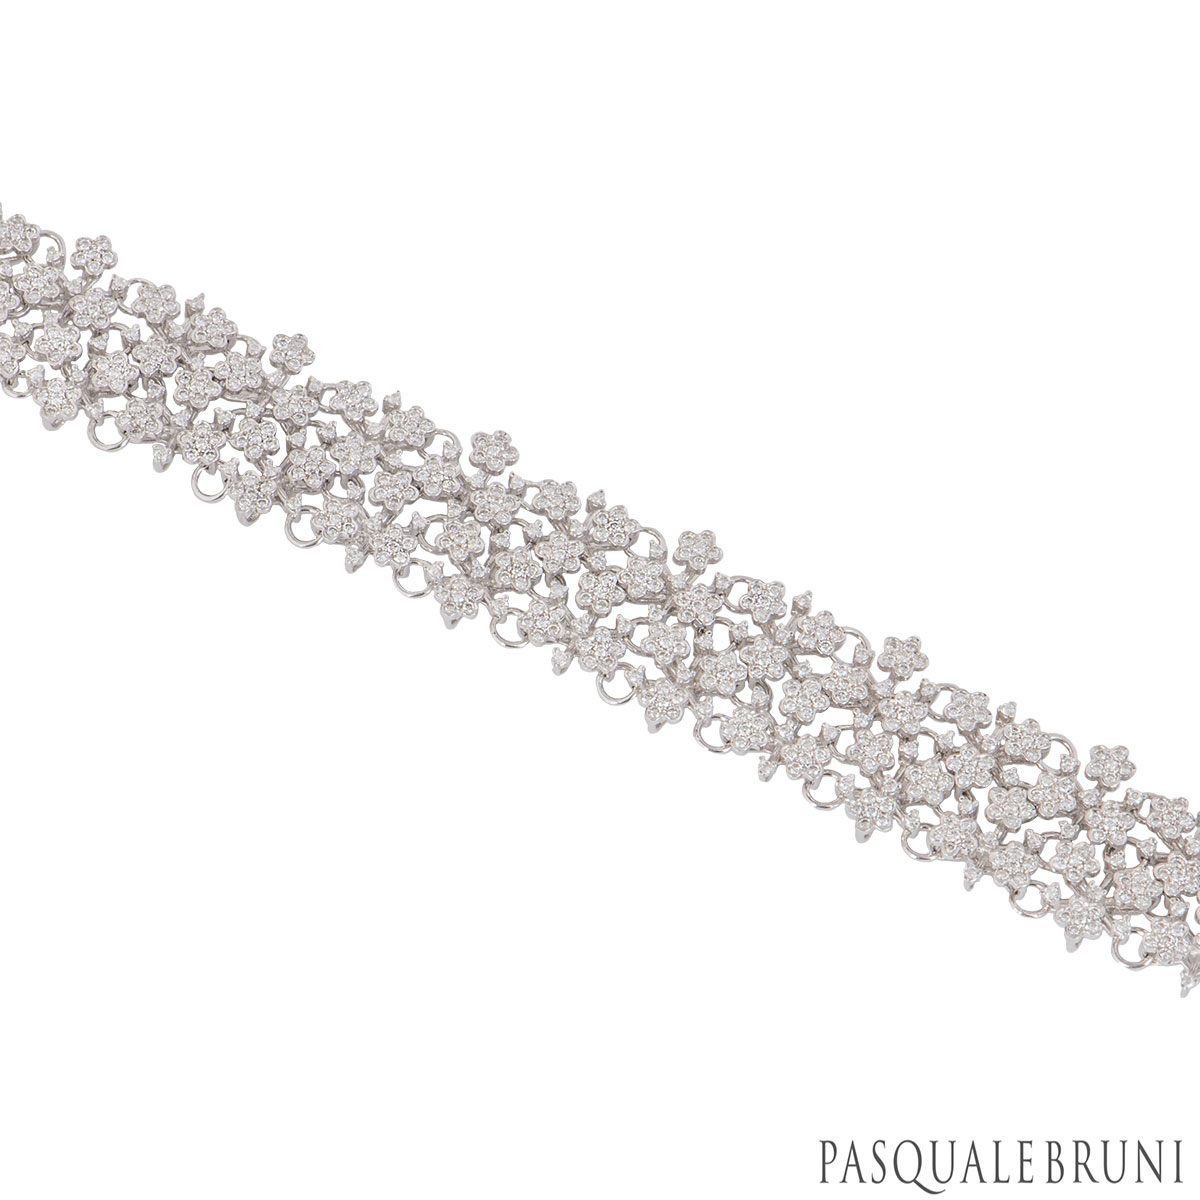 Pasquale Bruni White Gold Diamond Prato Fiorito Suite